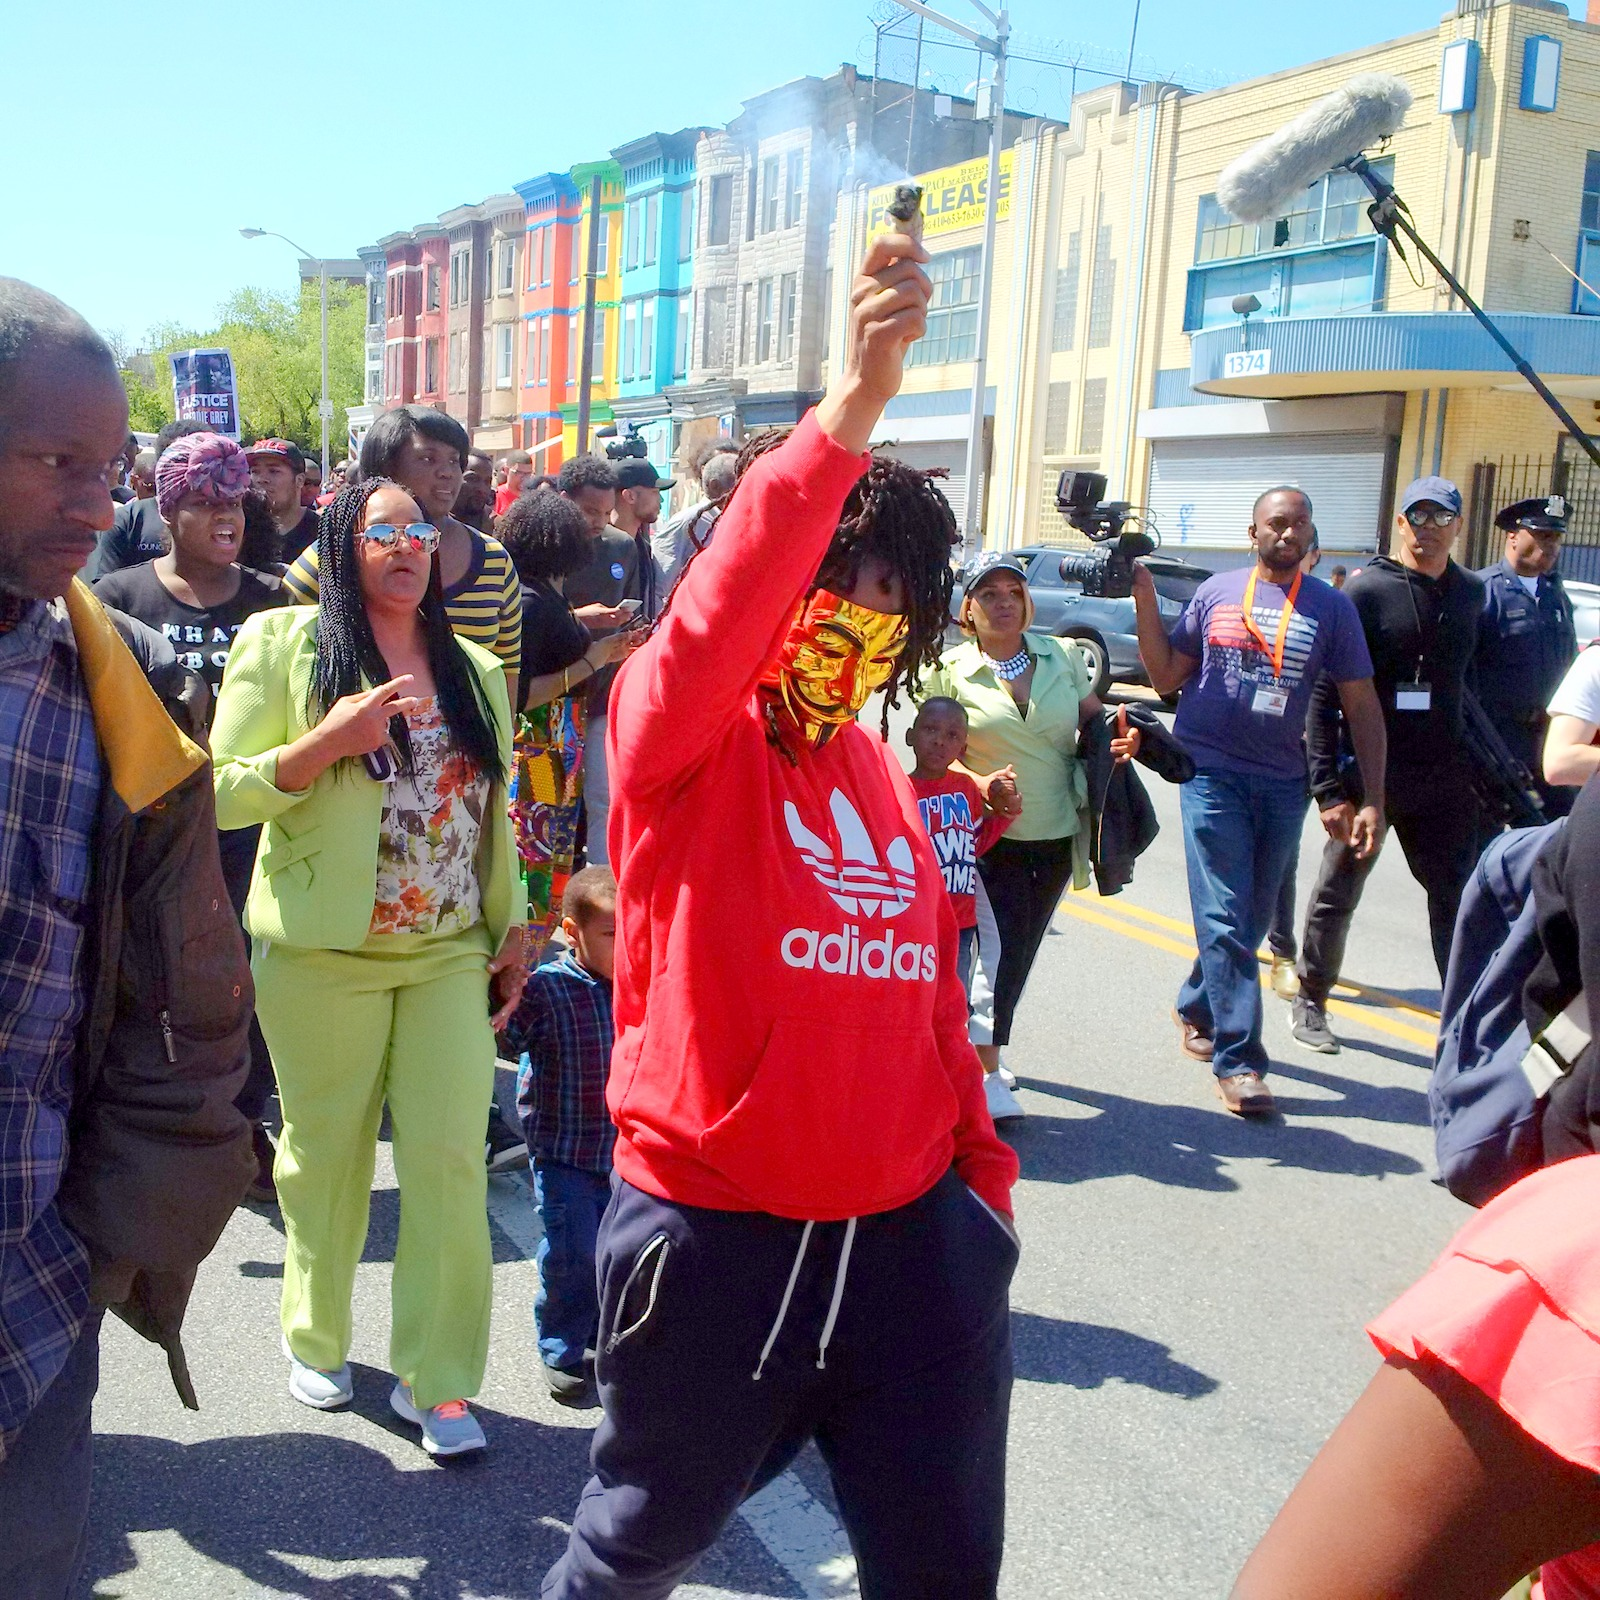 Joint uplifted, a woman walks down North Avenue as part of the